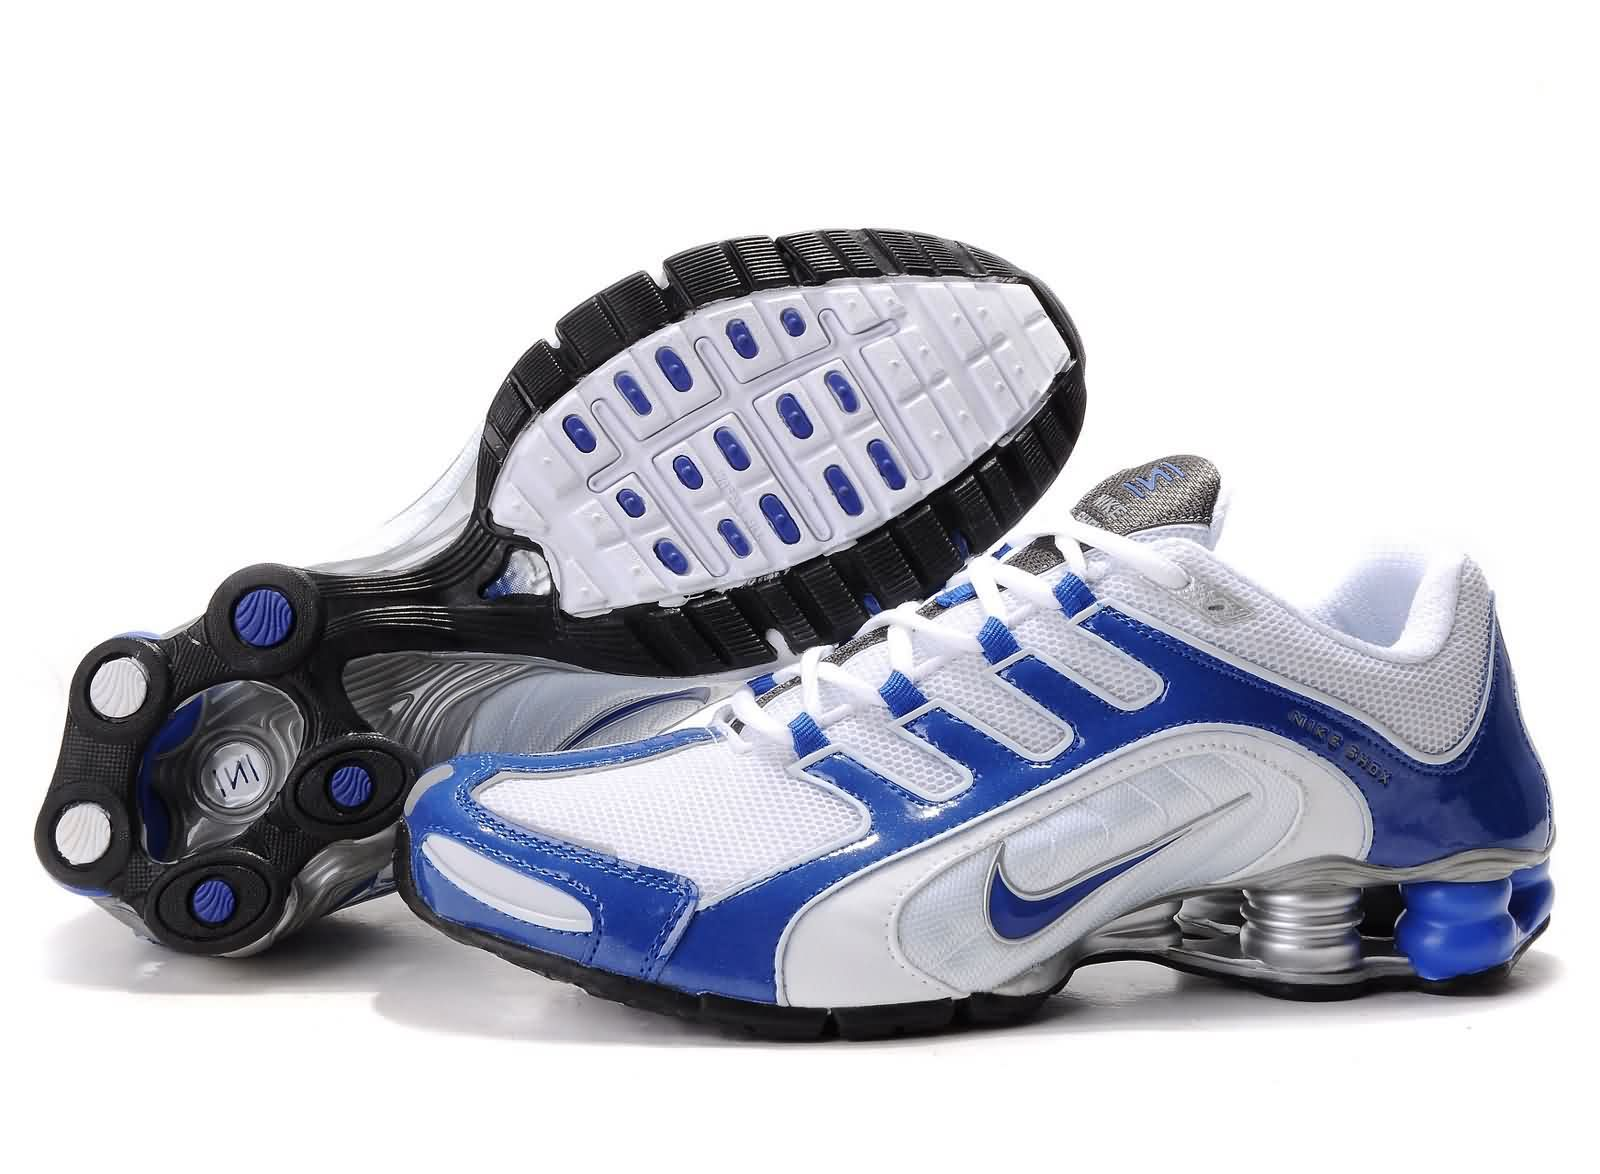 nike+shox+shoes | Nike Shox Shoes \u003e\u003e Nike Shox Navina Men\u0027s Shoes